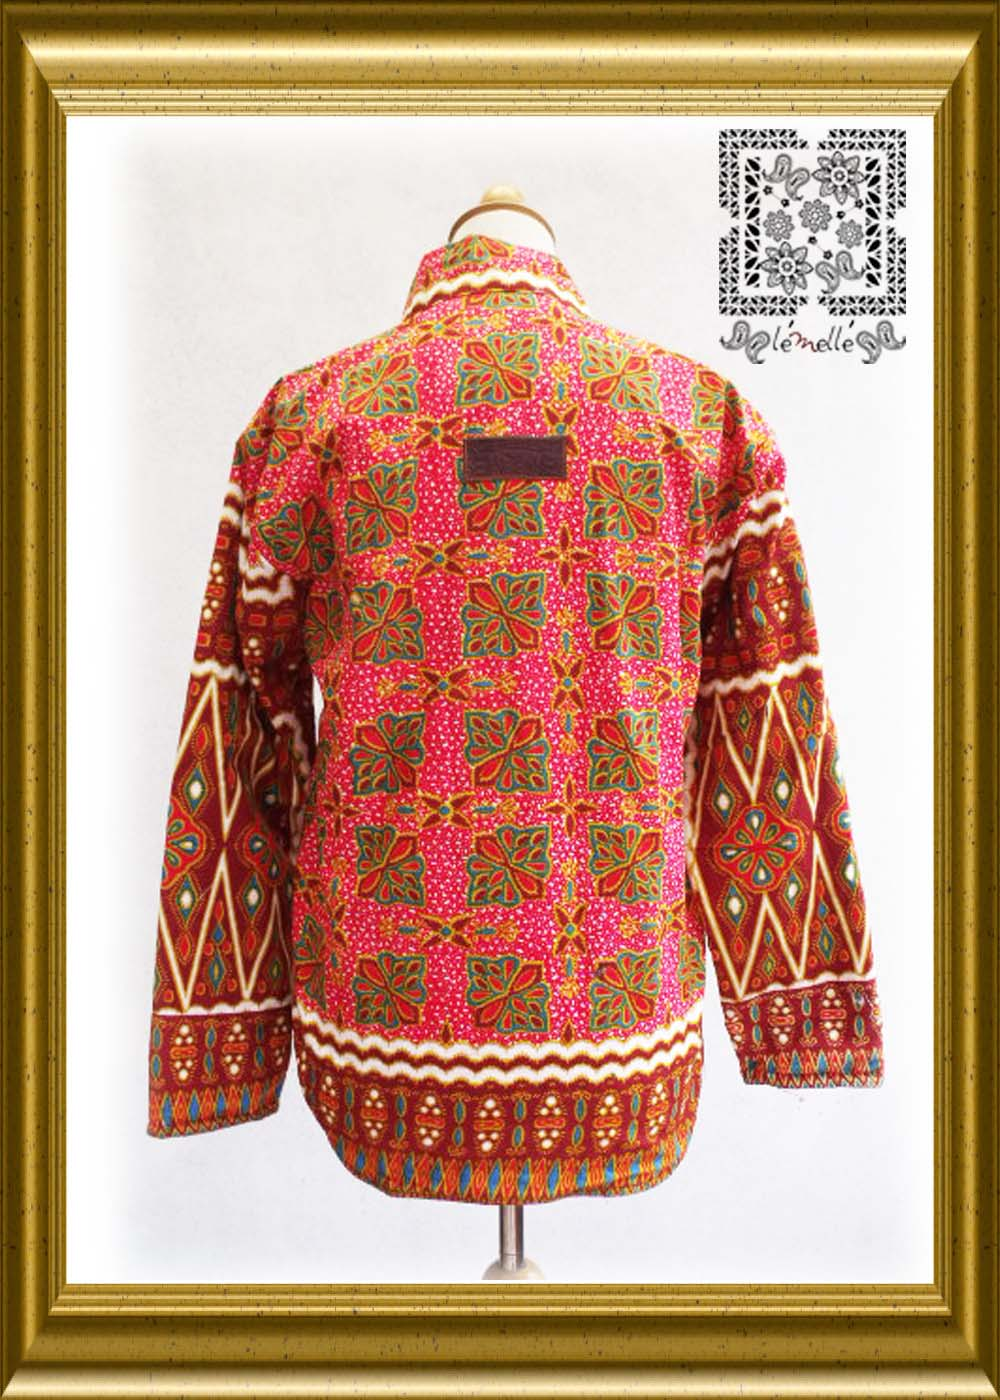 Lemelle - The Newbie Things: batik jacket for woman season 8